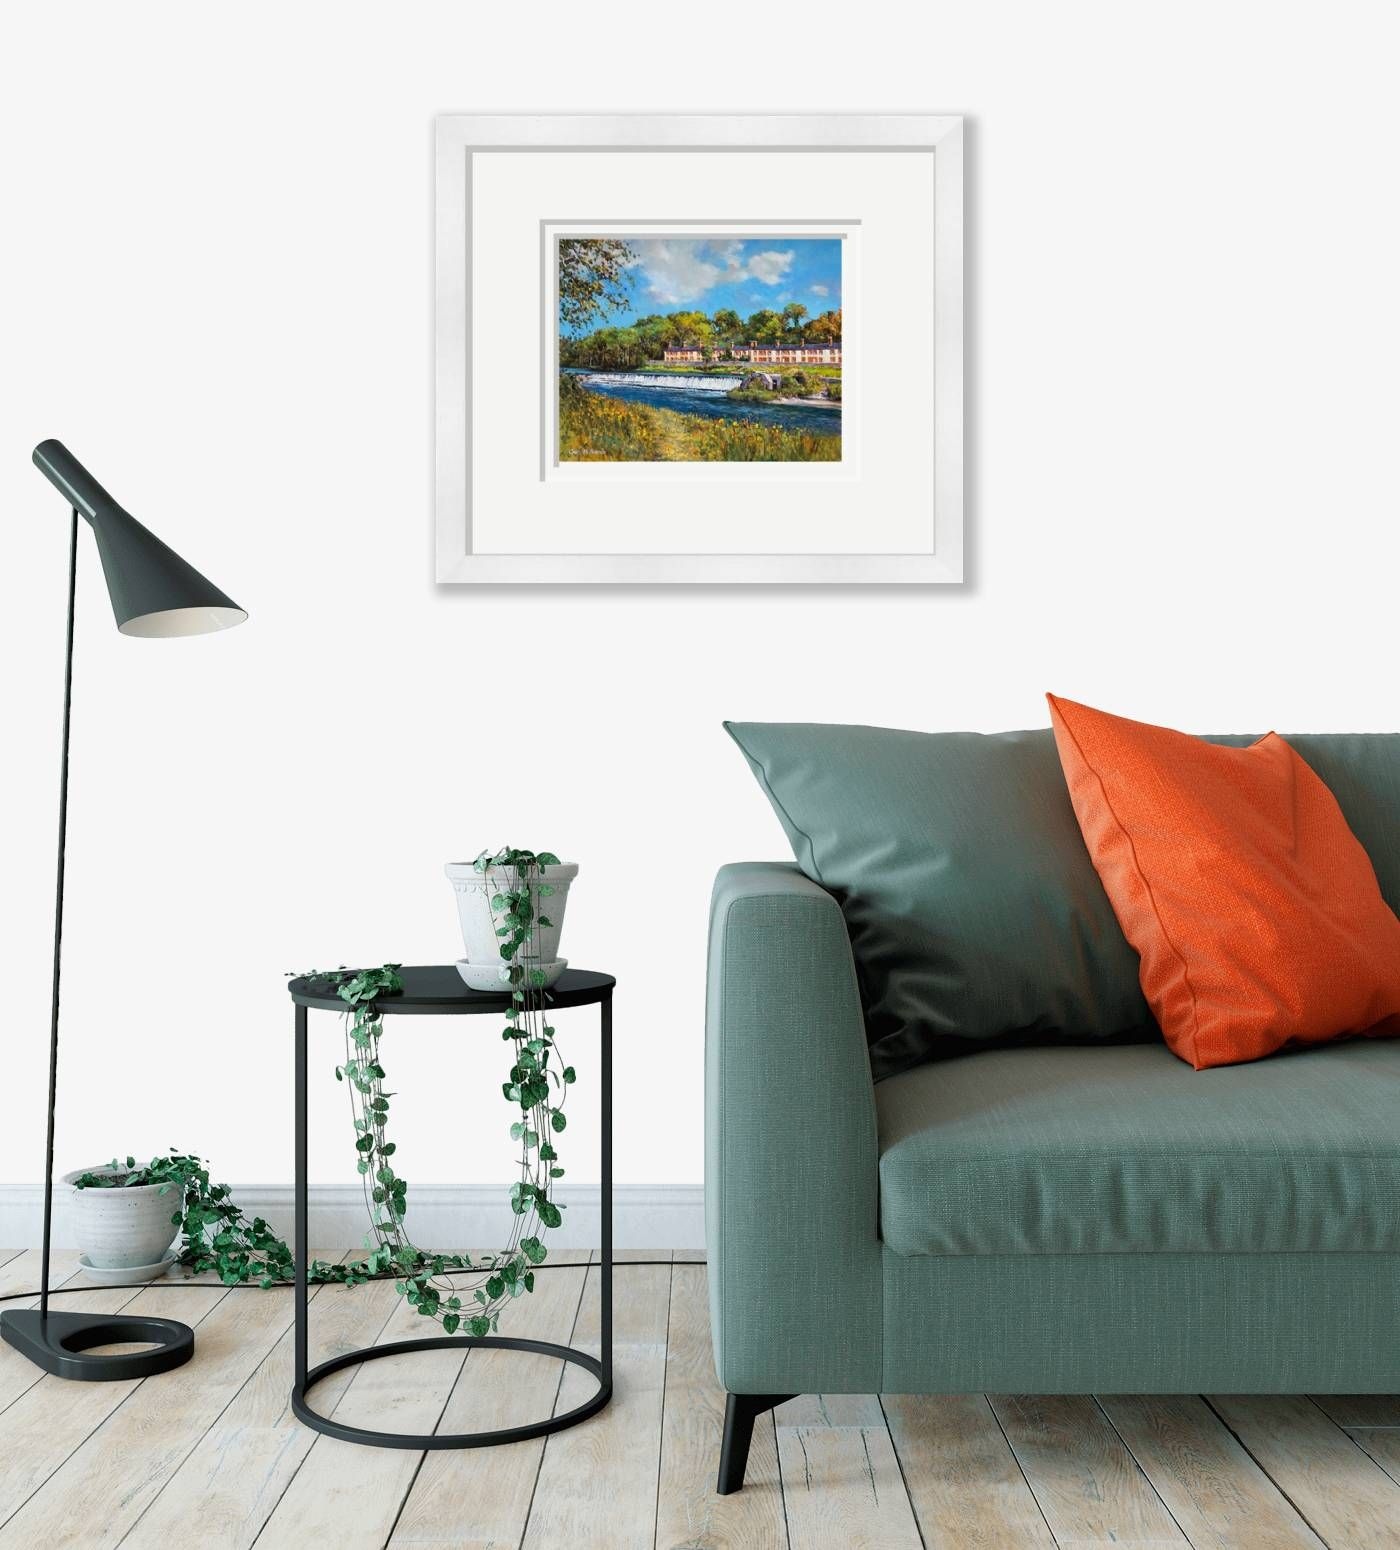 Large framed - Cottages by the Weir, Lucan, Co Dublin - 299 by Chris McMorrow